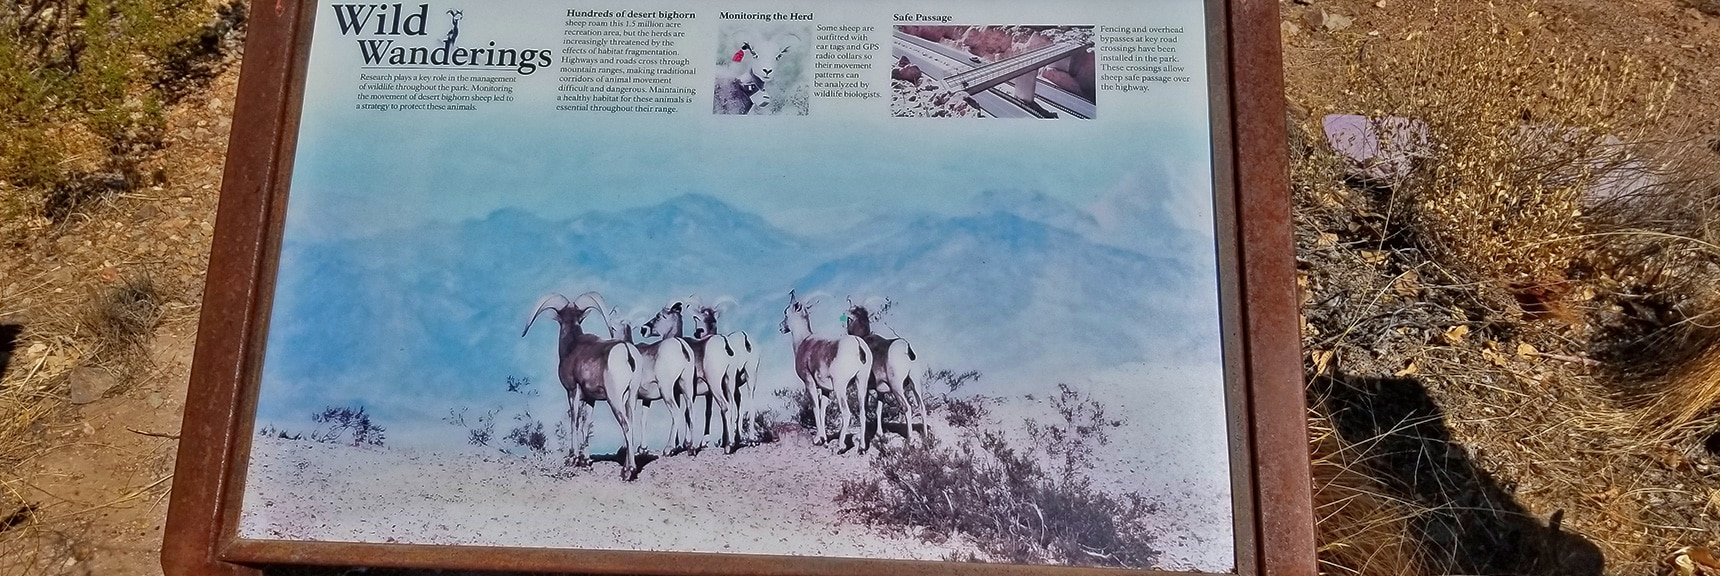 Interpretive Display of Animal Life in the Callville Bay Area   Callville Summit Trail   Lake Mead National Recreation Area, Nevada